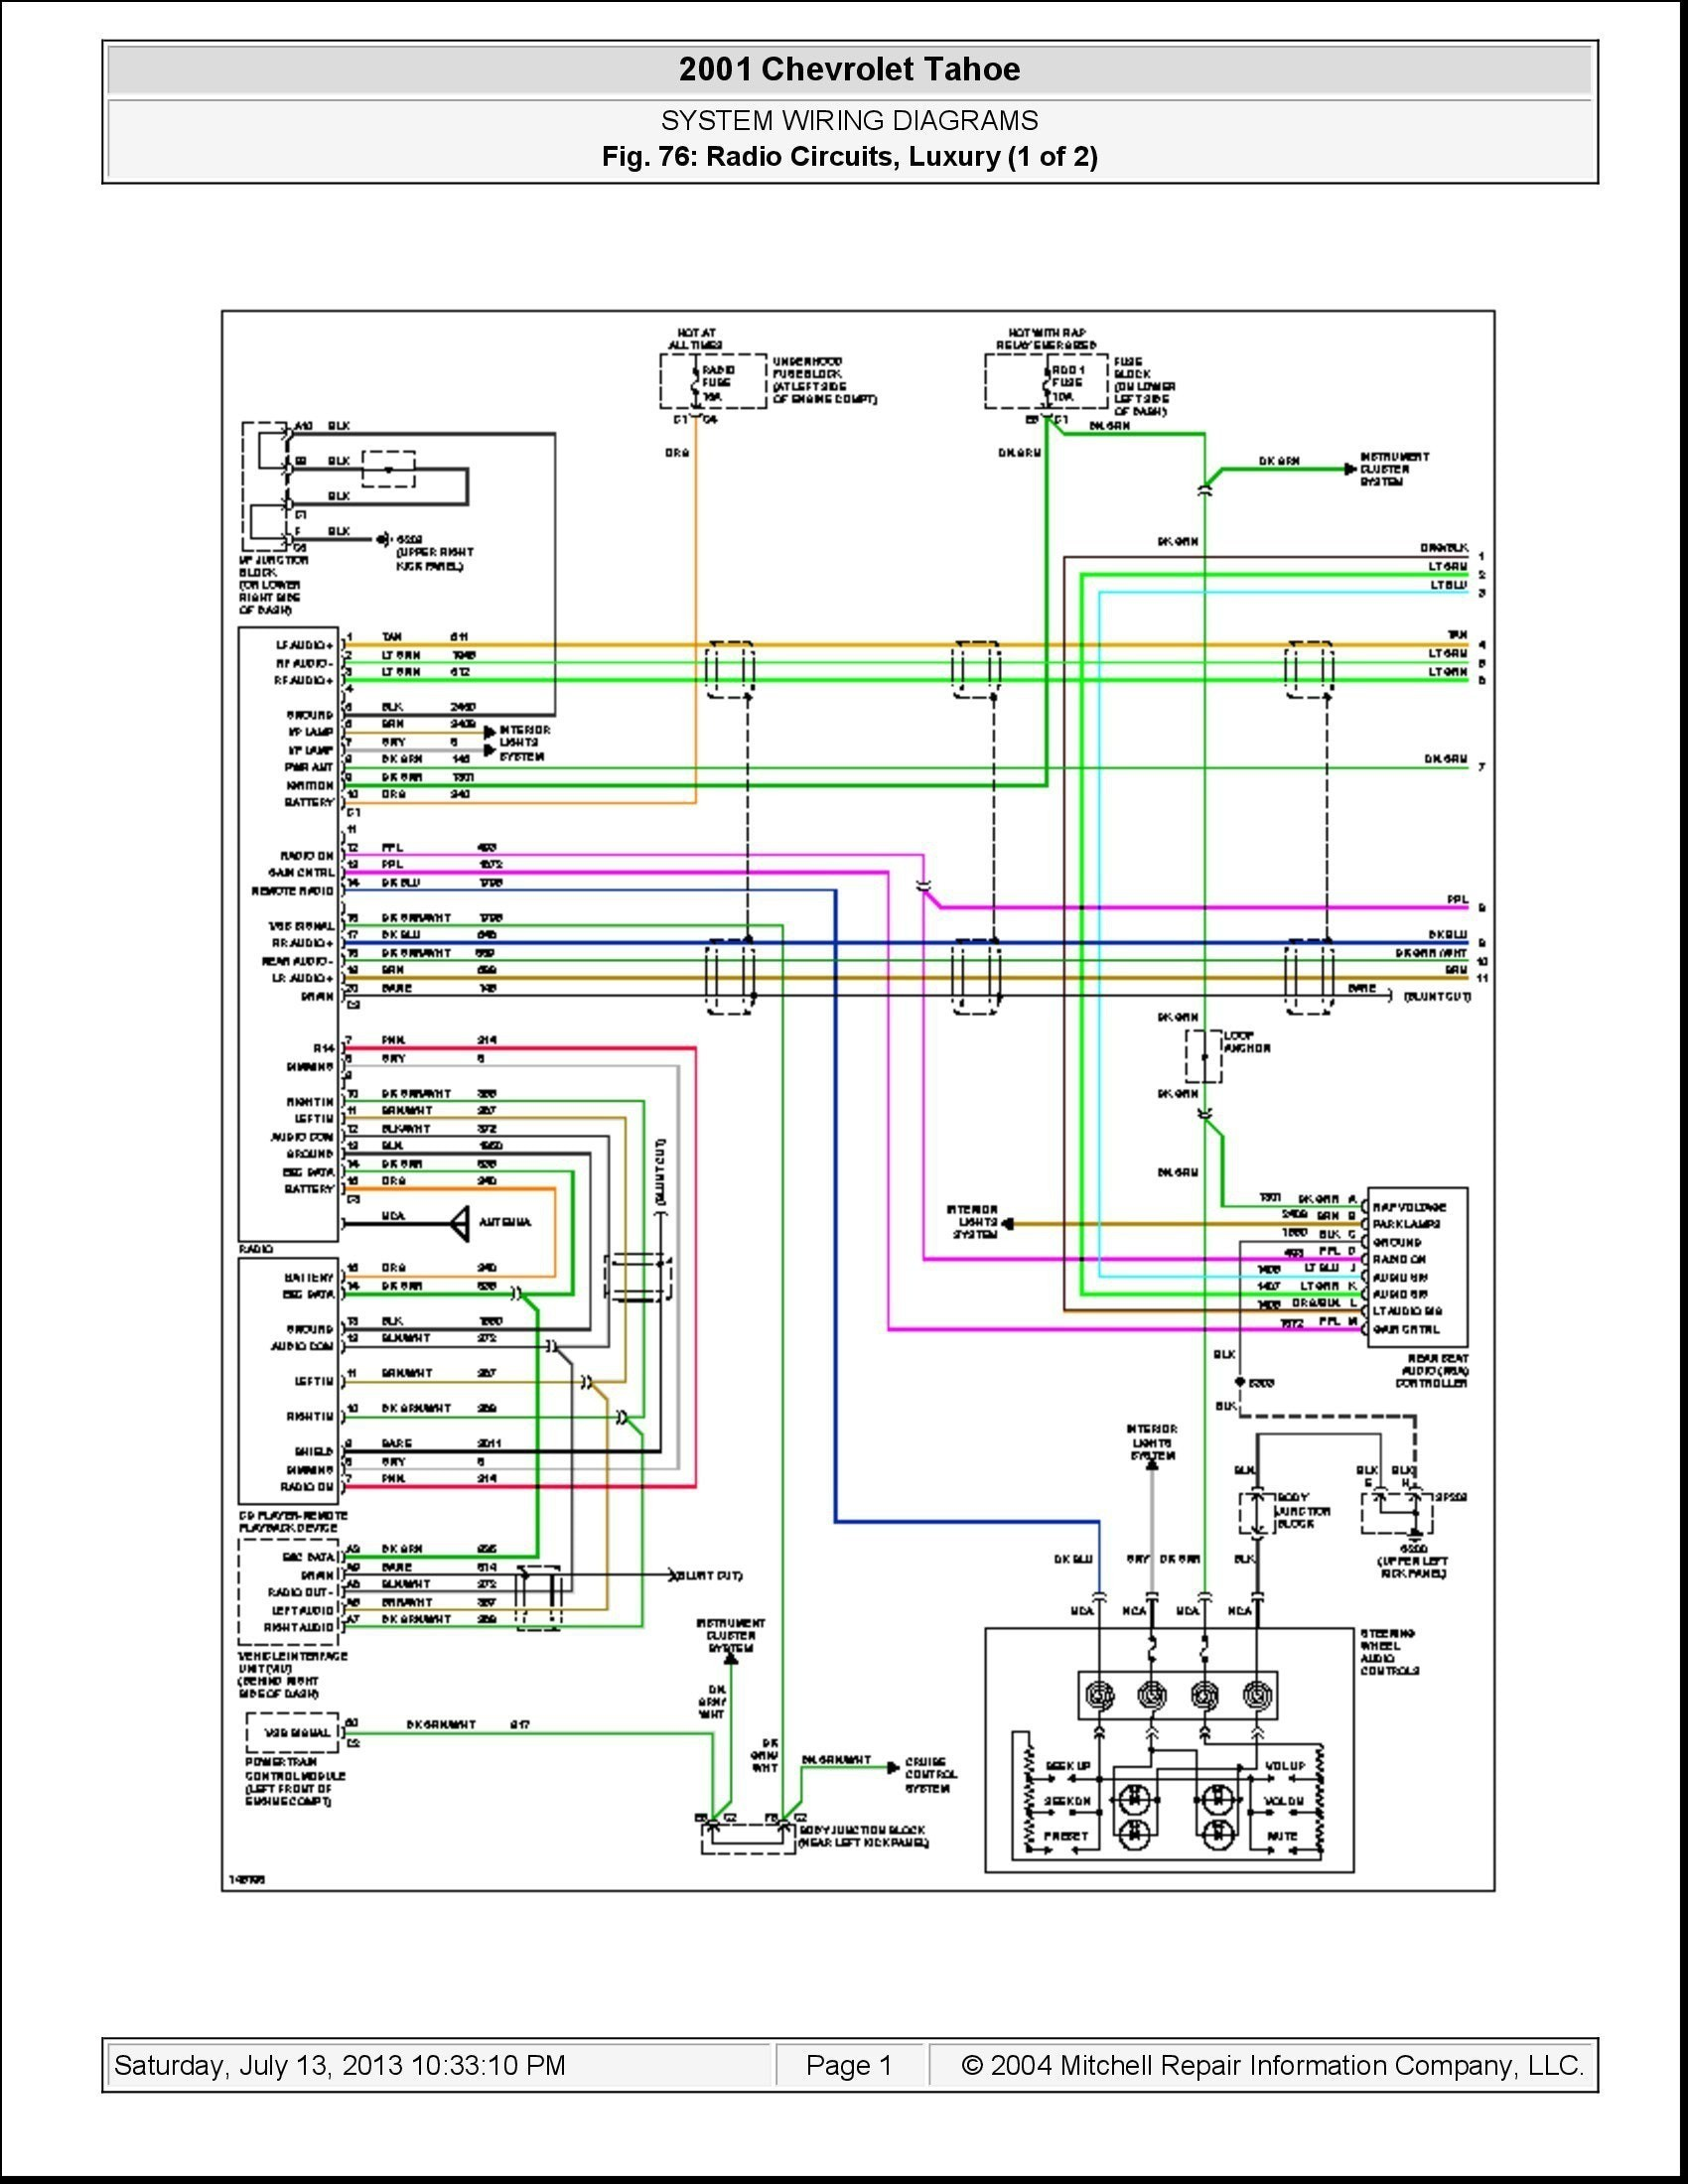 for 2012 camaro radio wiring diagrams 2012 chevy wiring diagram e1 wiring diagram  2012 chevy wiring diagram e1 wiring